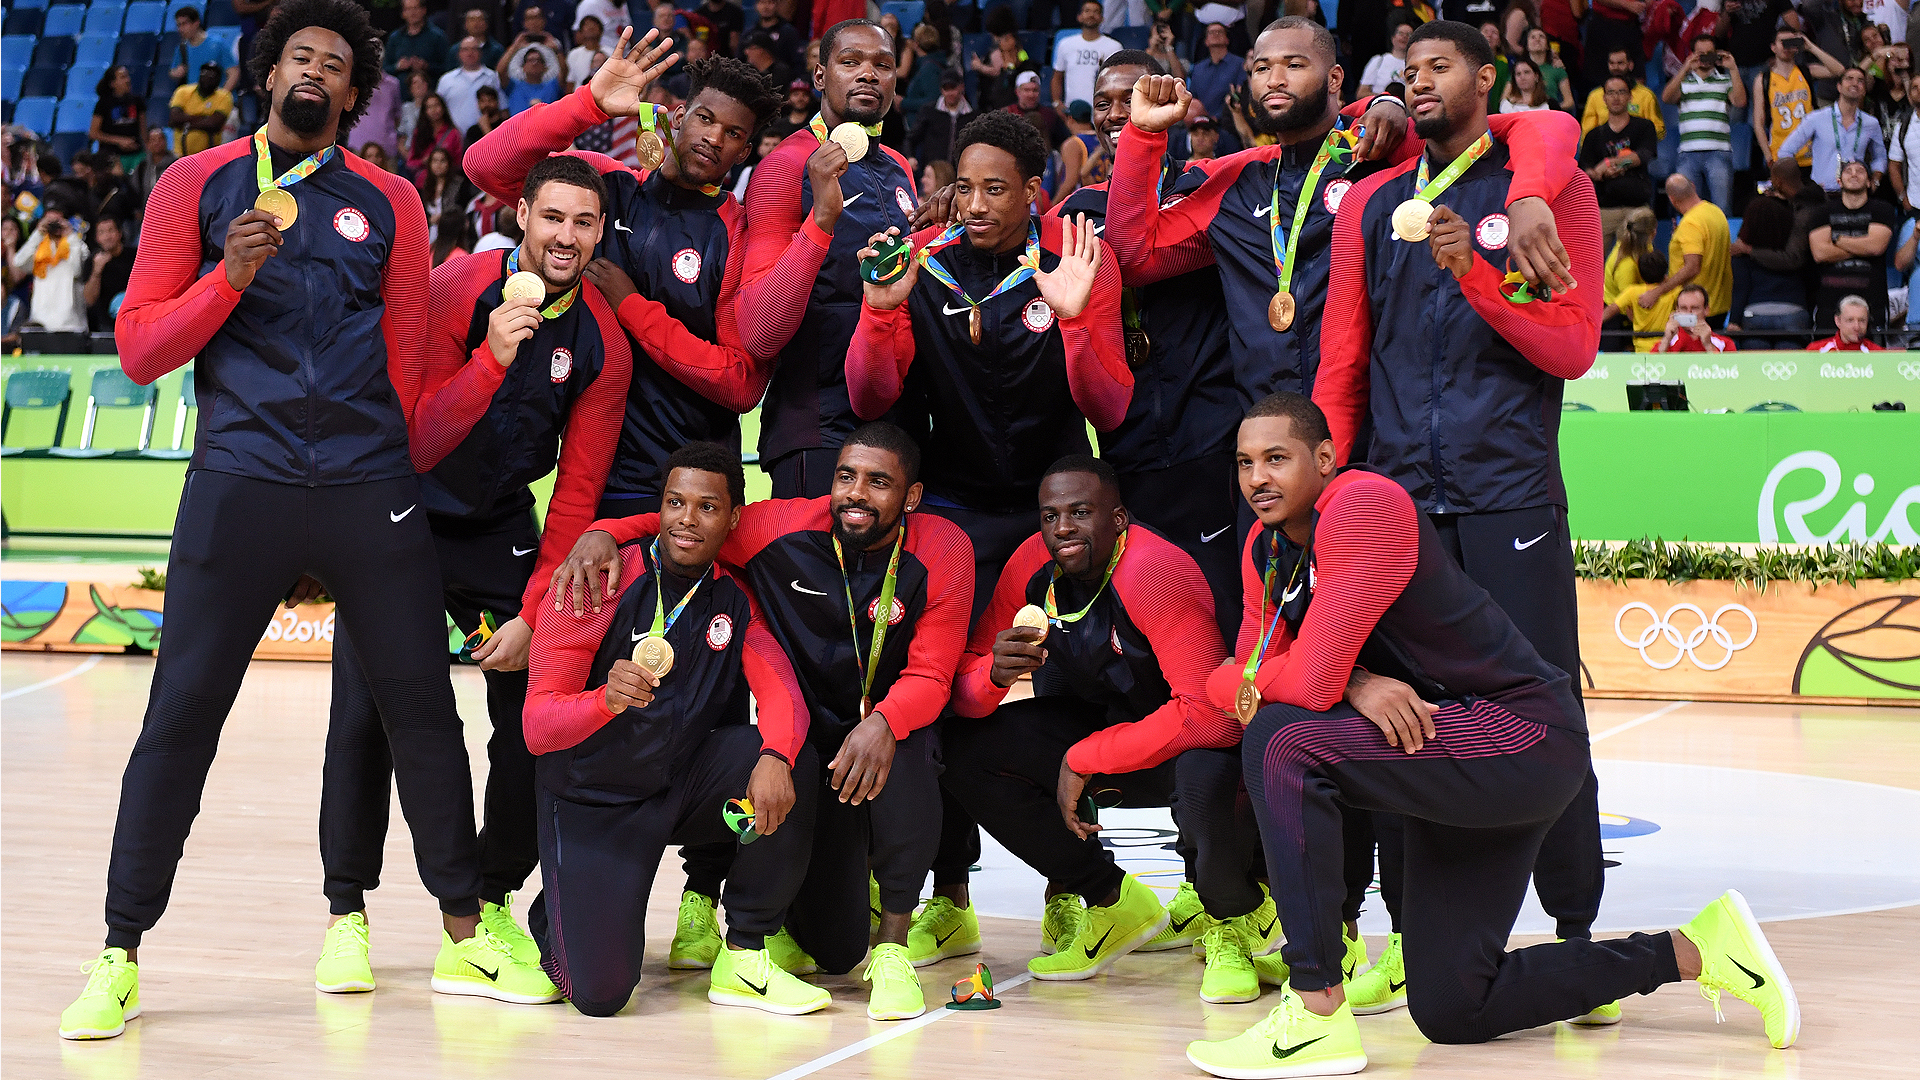 Usa Basketball Announces 44 Finalists For 2020 U S Olympic Men S Team